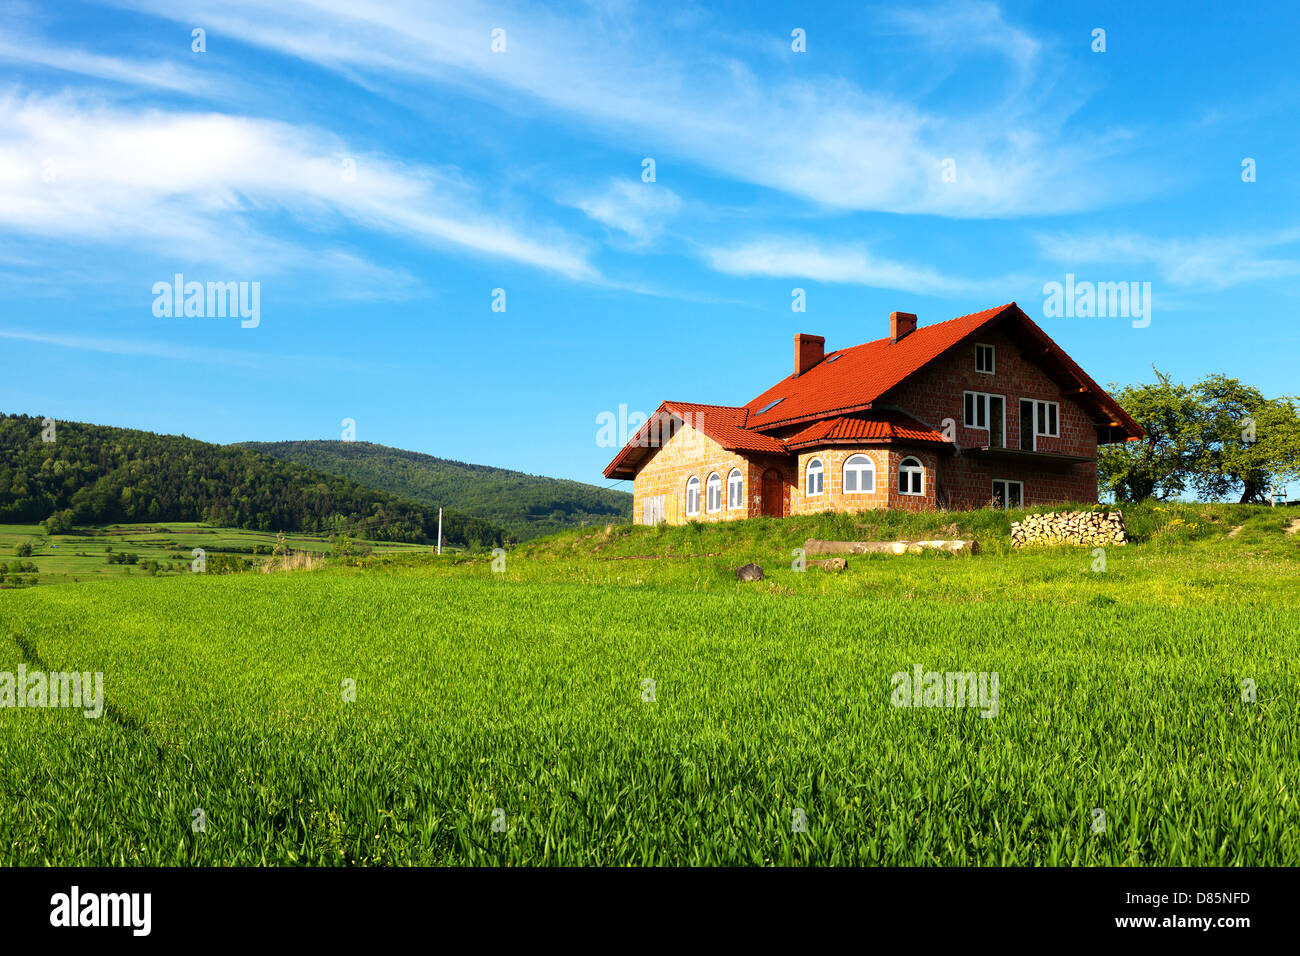 New house in the mountains - Stock Image